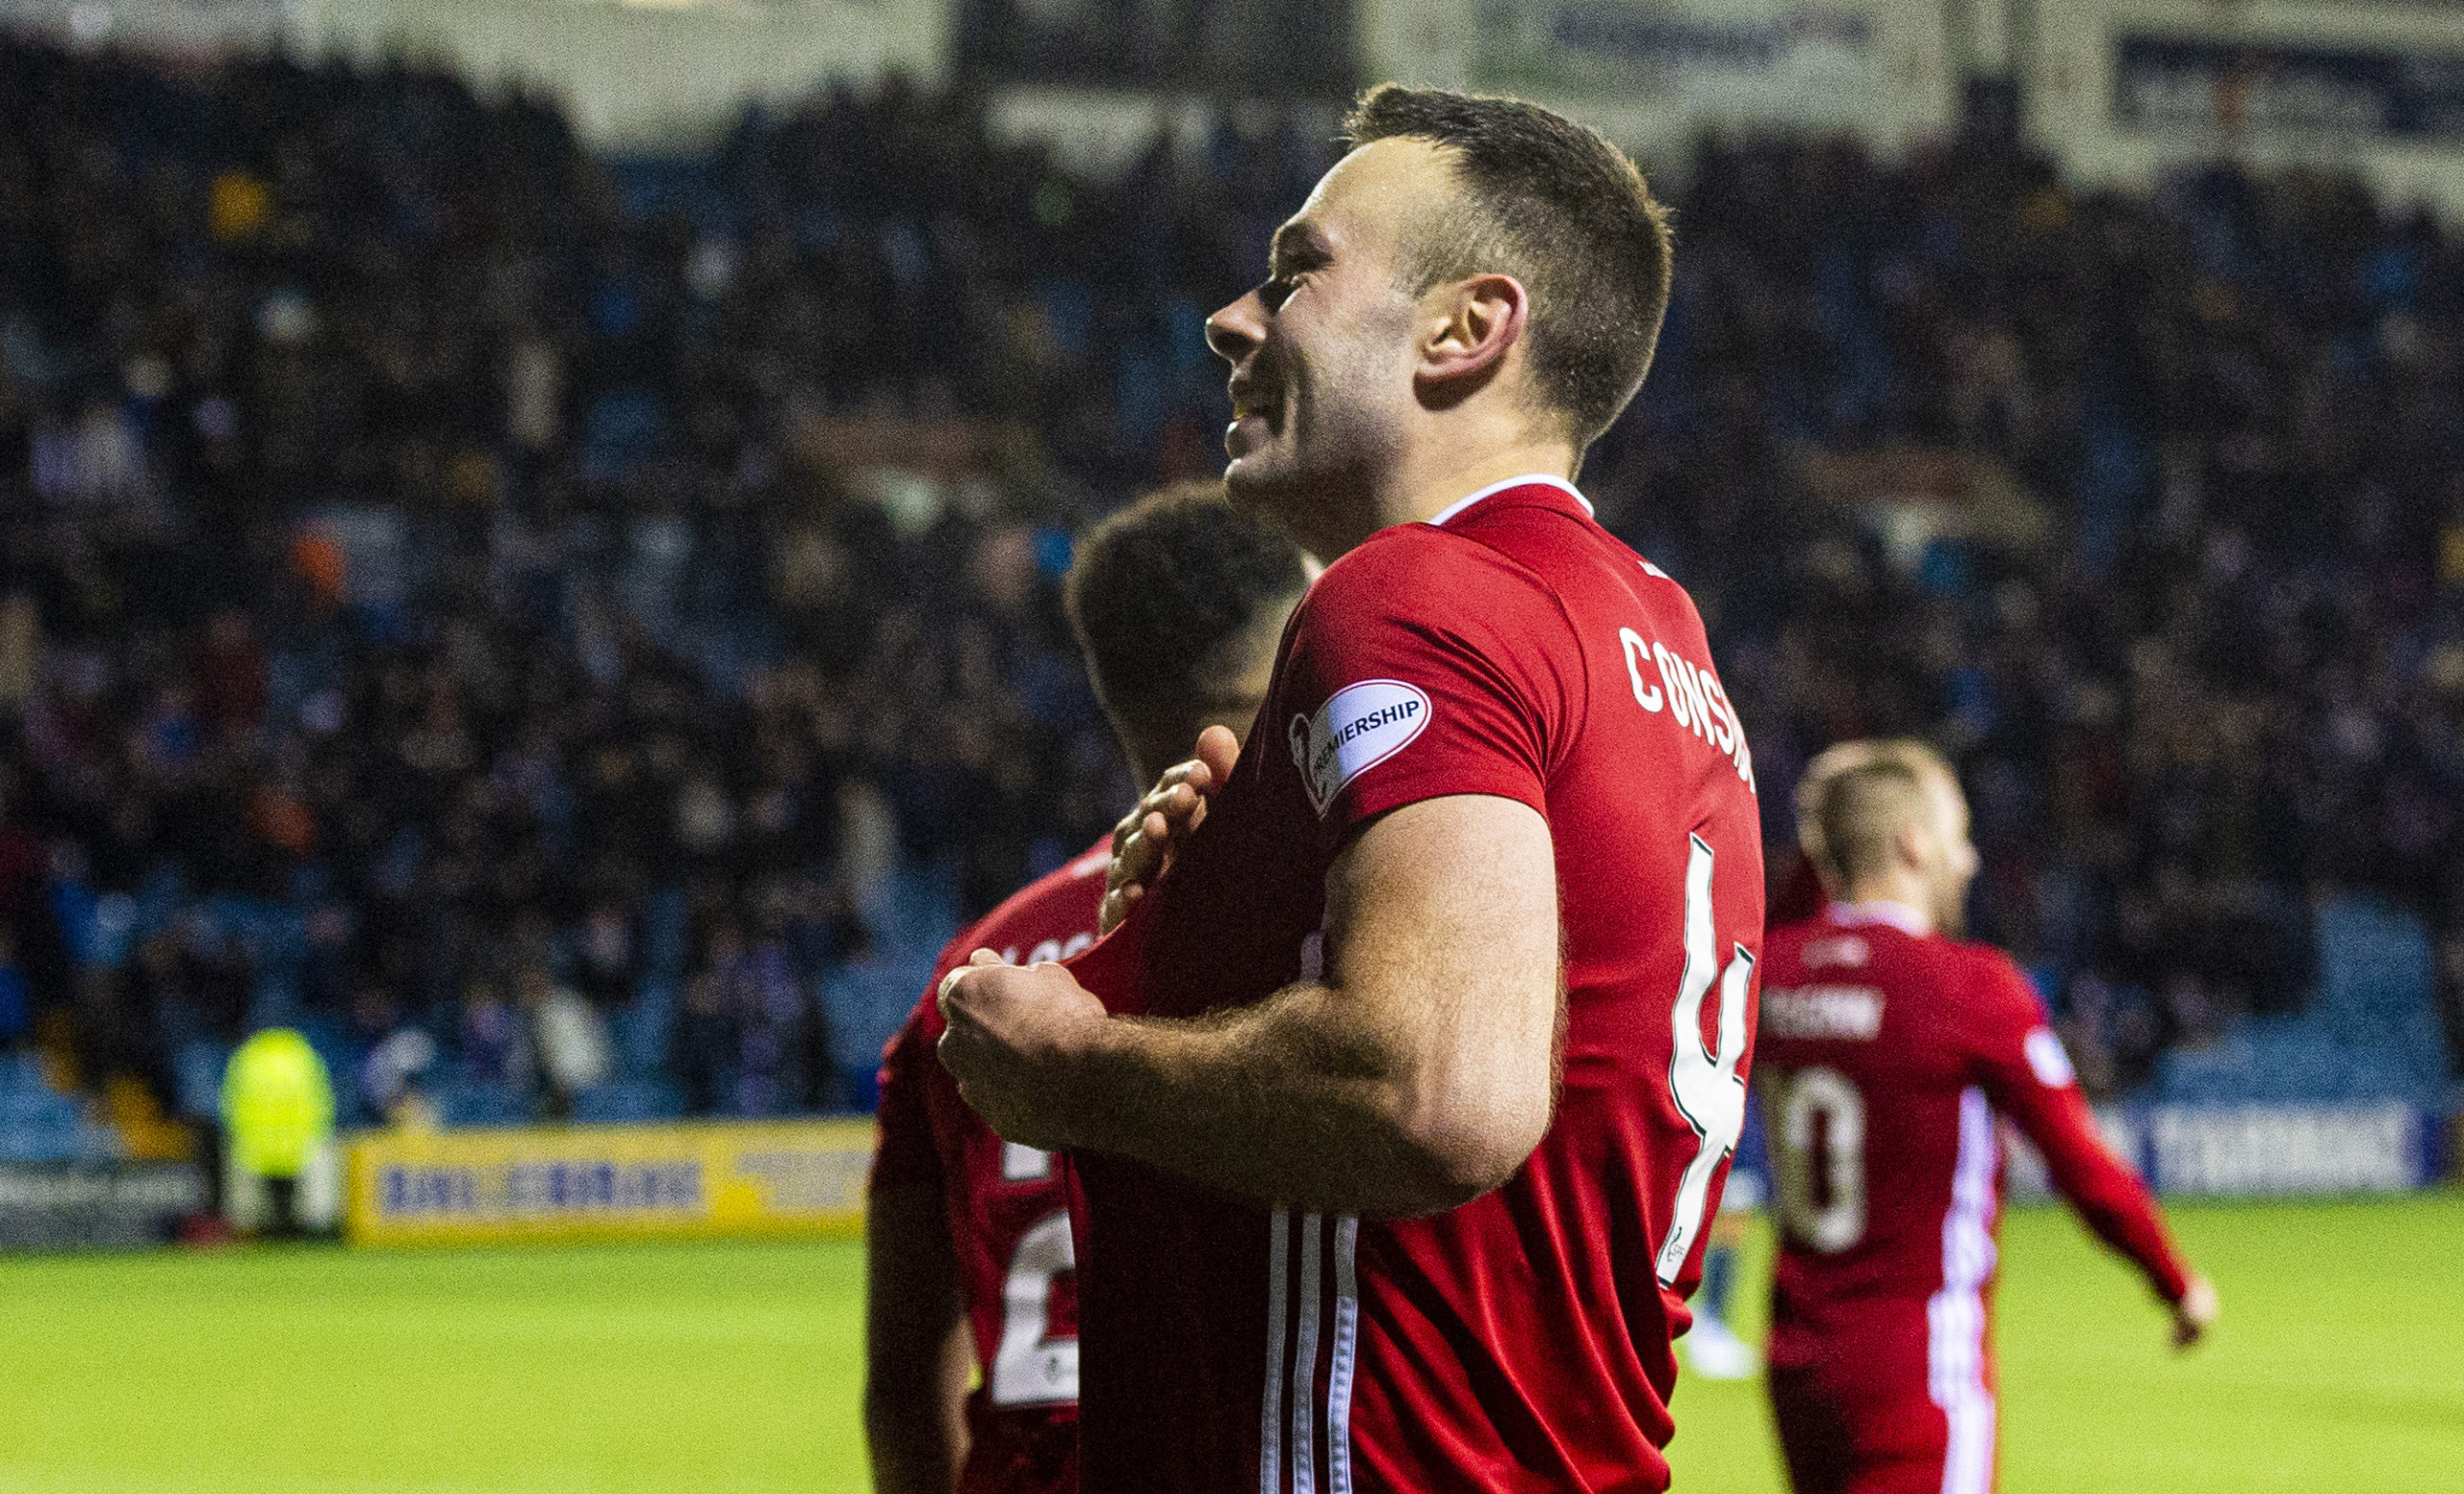 Considine was tipped for a Scotland call-up before the shutdown.